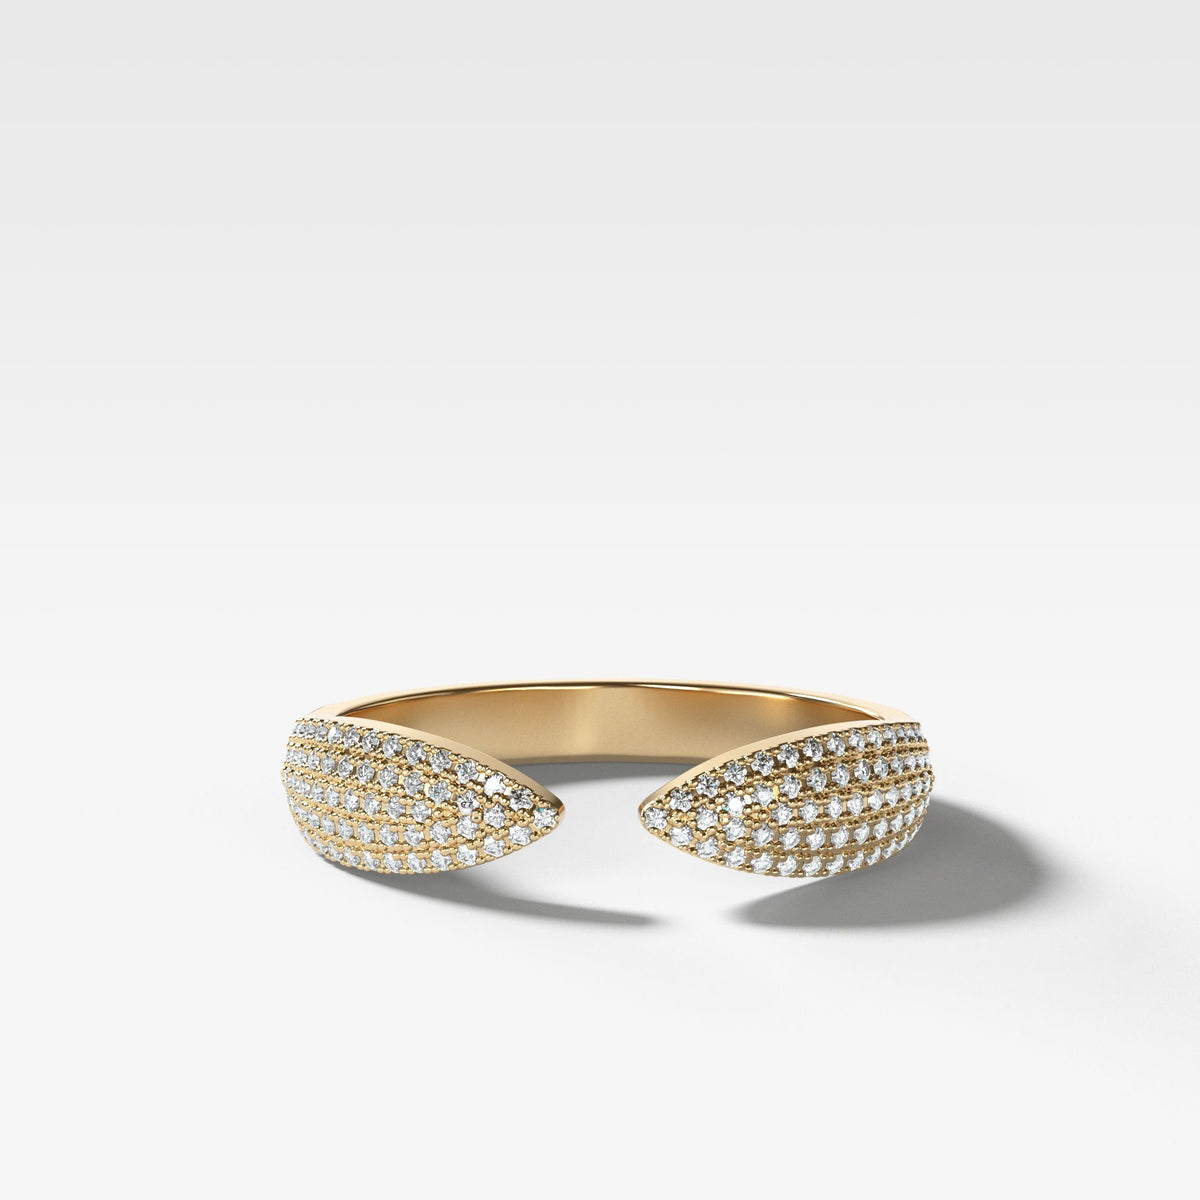 Pavé Finger Cuff Diamond Band available in Yellow Gold by Good Stone